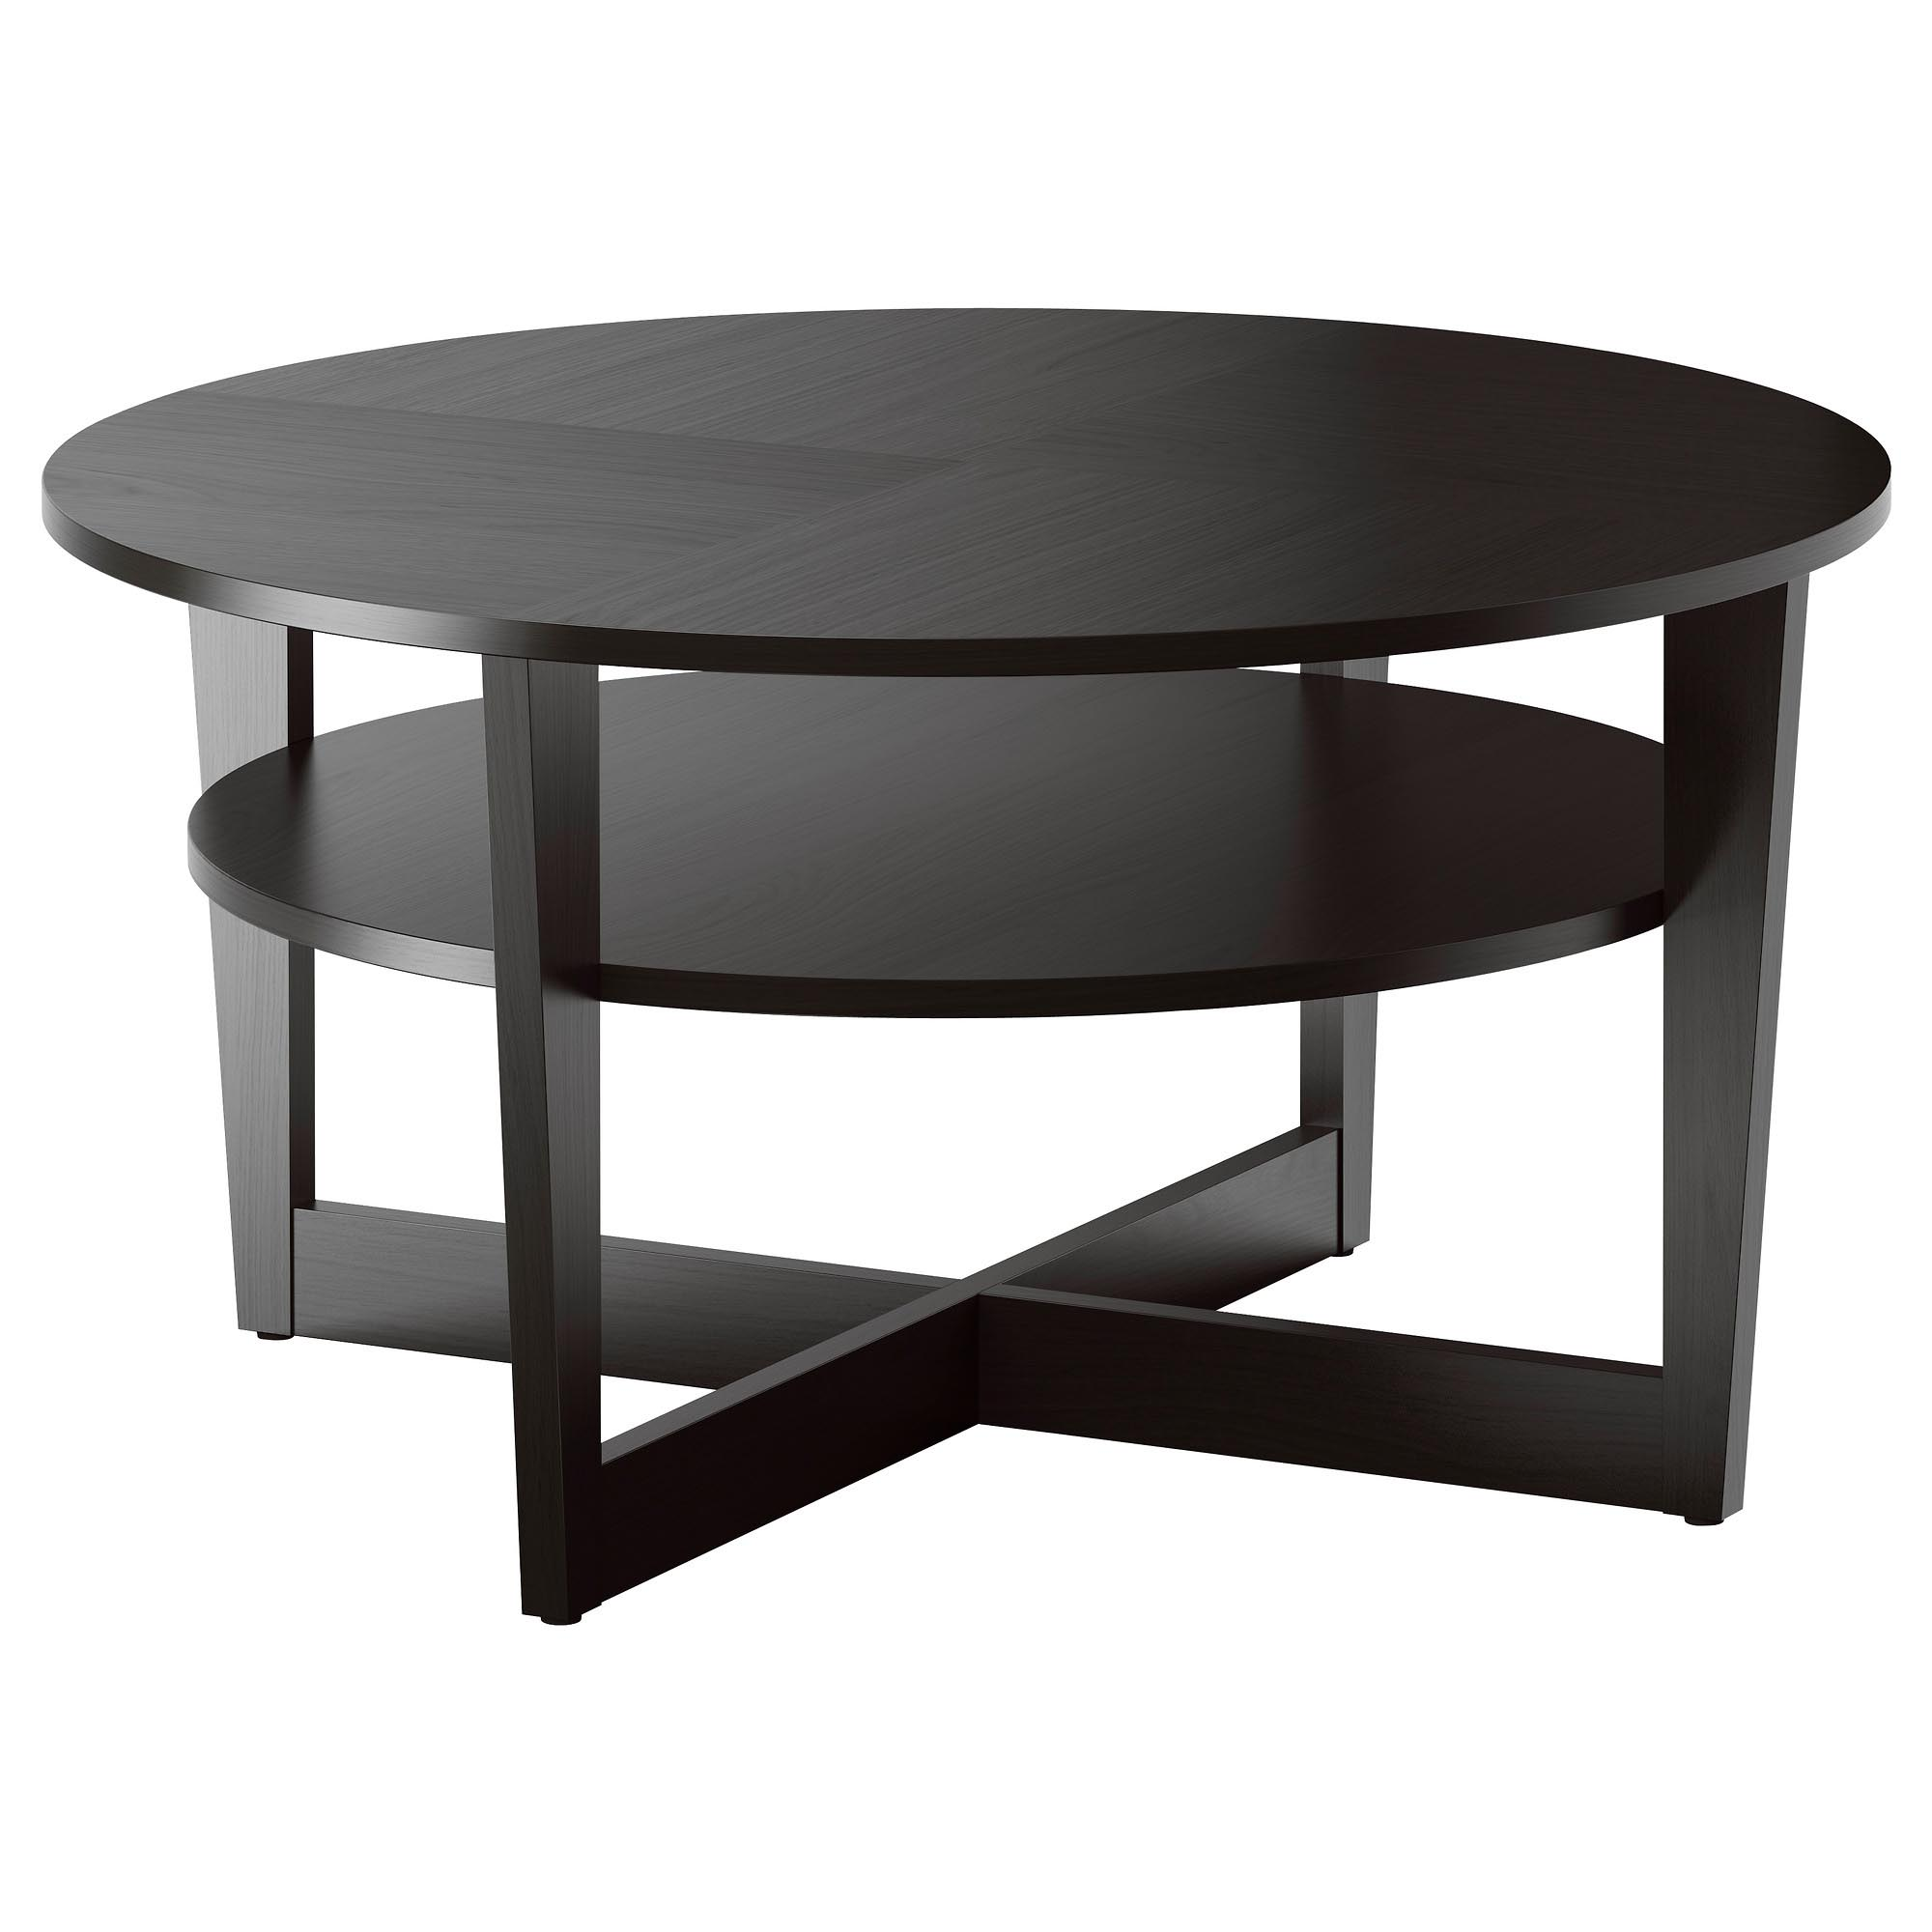 Ikea Marble Top Coffee Table: Coffee Table Design Ideas